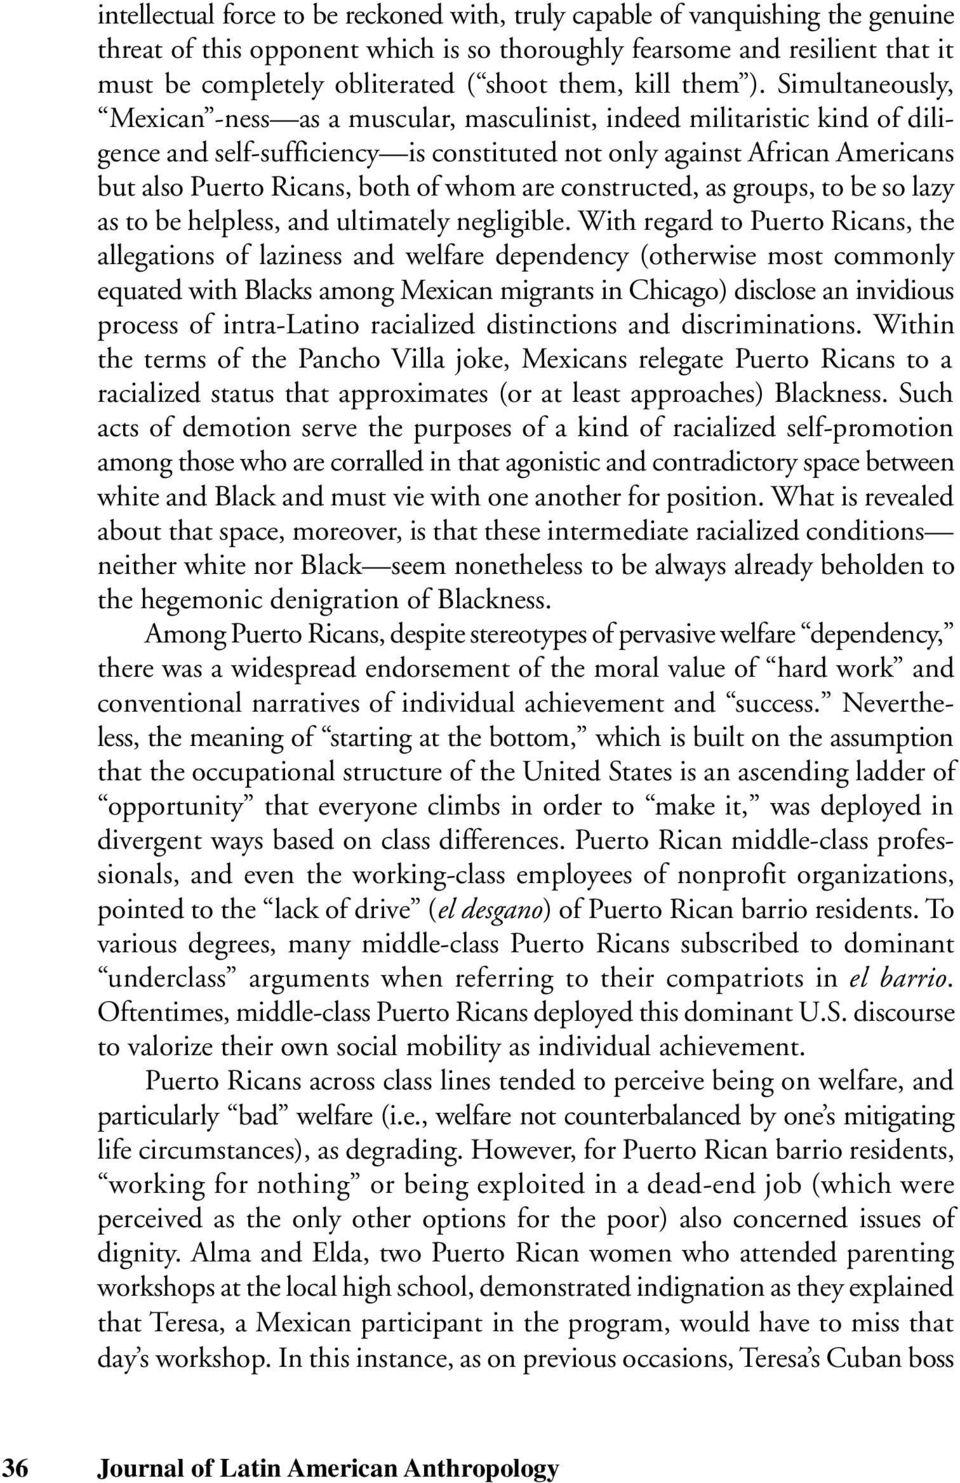 Simultaneously, Mexican -ness as a muscular, masculinist, indeed militaristic kind of diligence and self-sufficiency is constituted not only against African Americans but also Puerto Ricans, both of